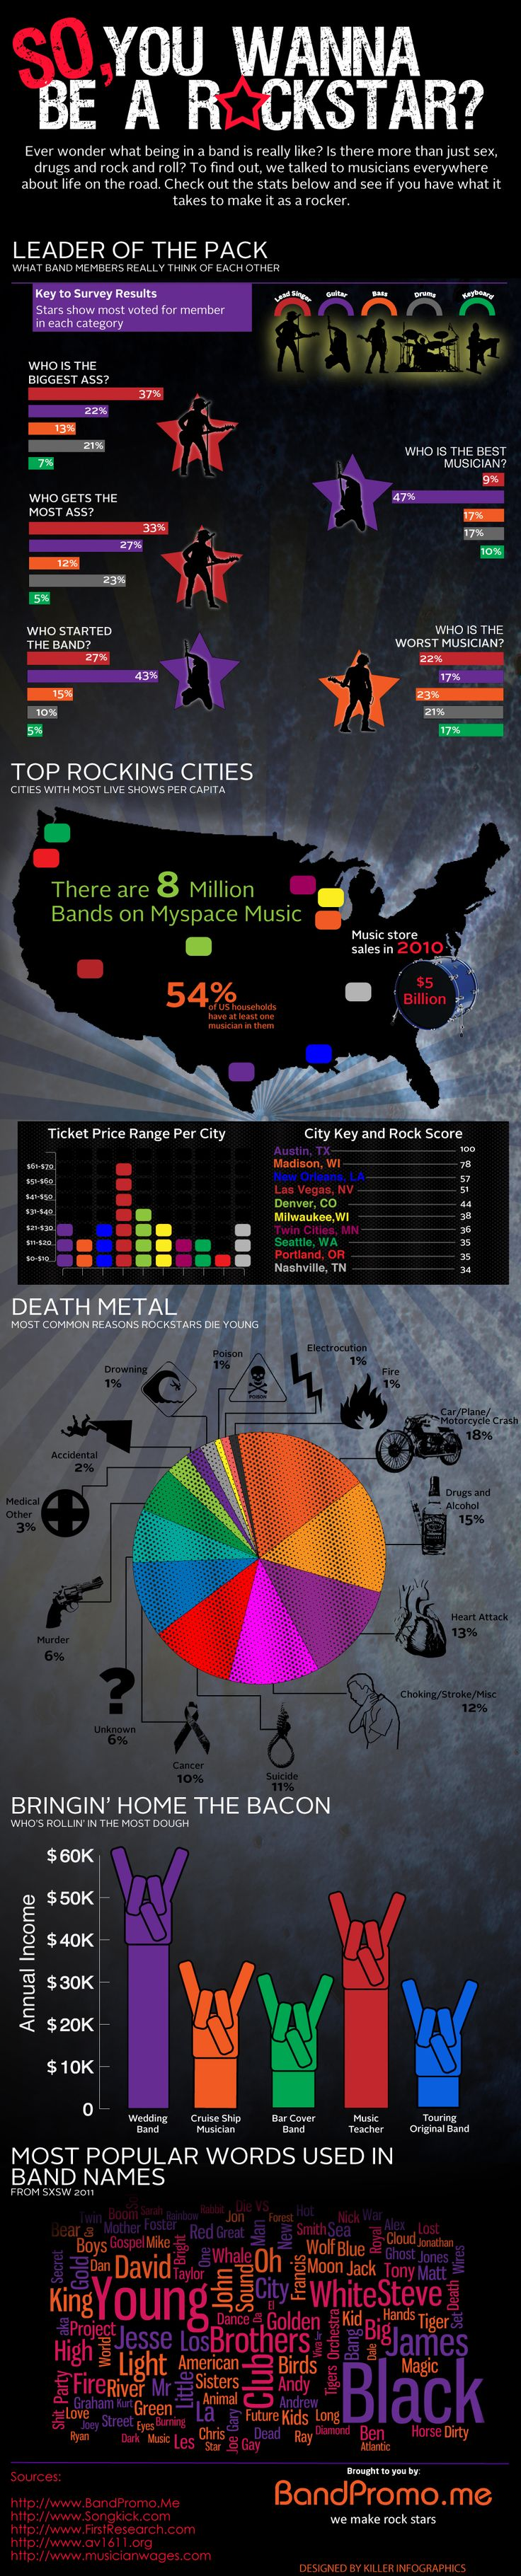 Rock musician infographic. so-you-wanna-be-a-rockstar-infographic-bandpromome